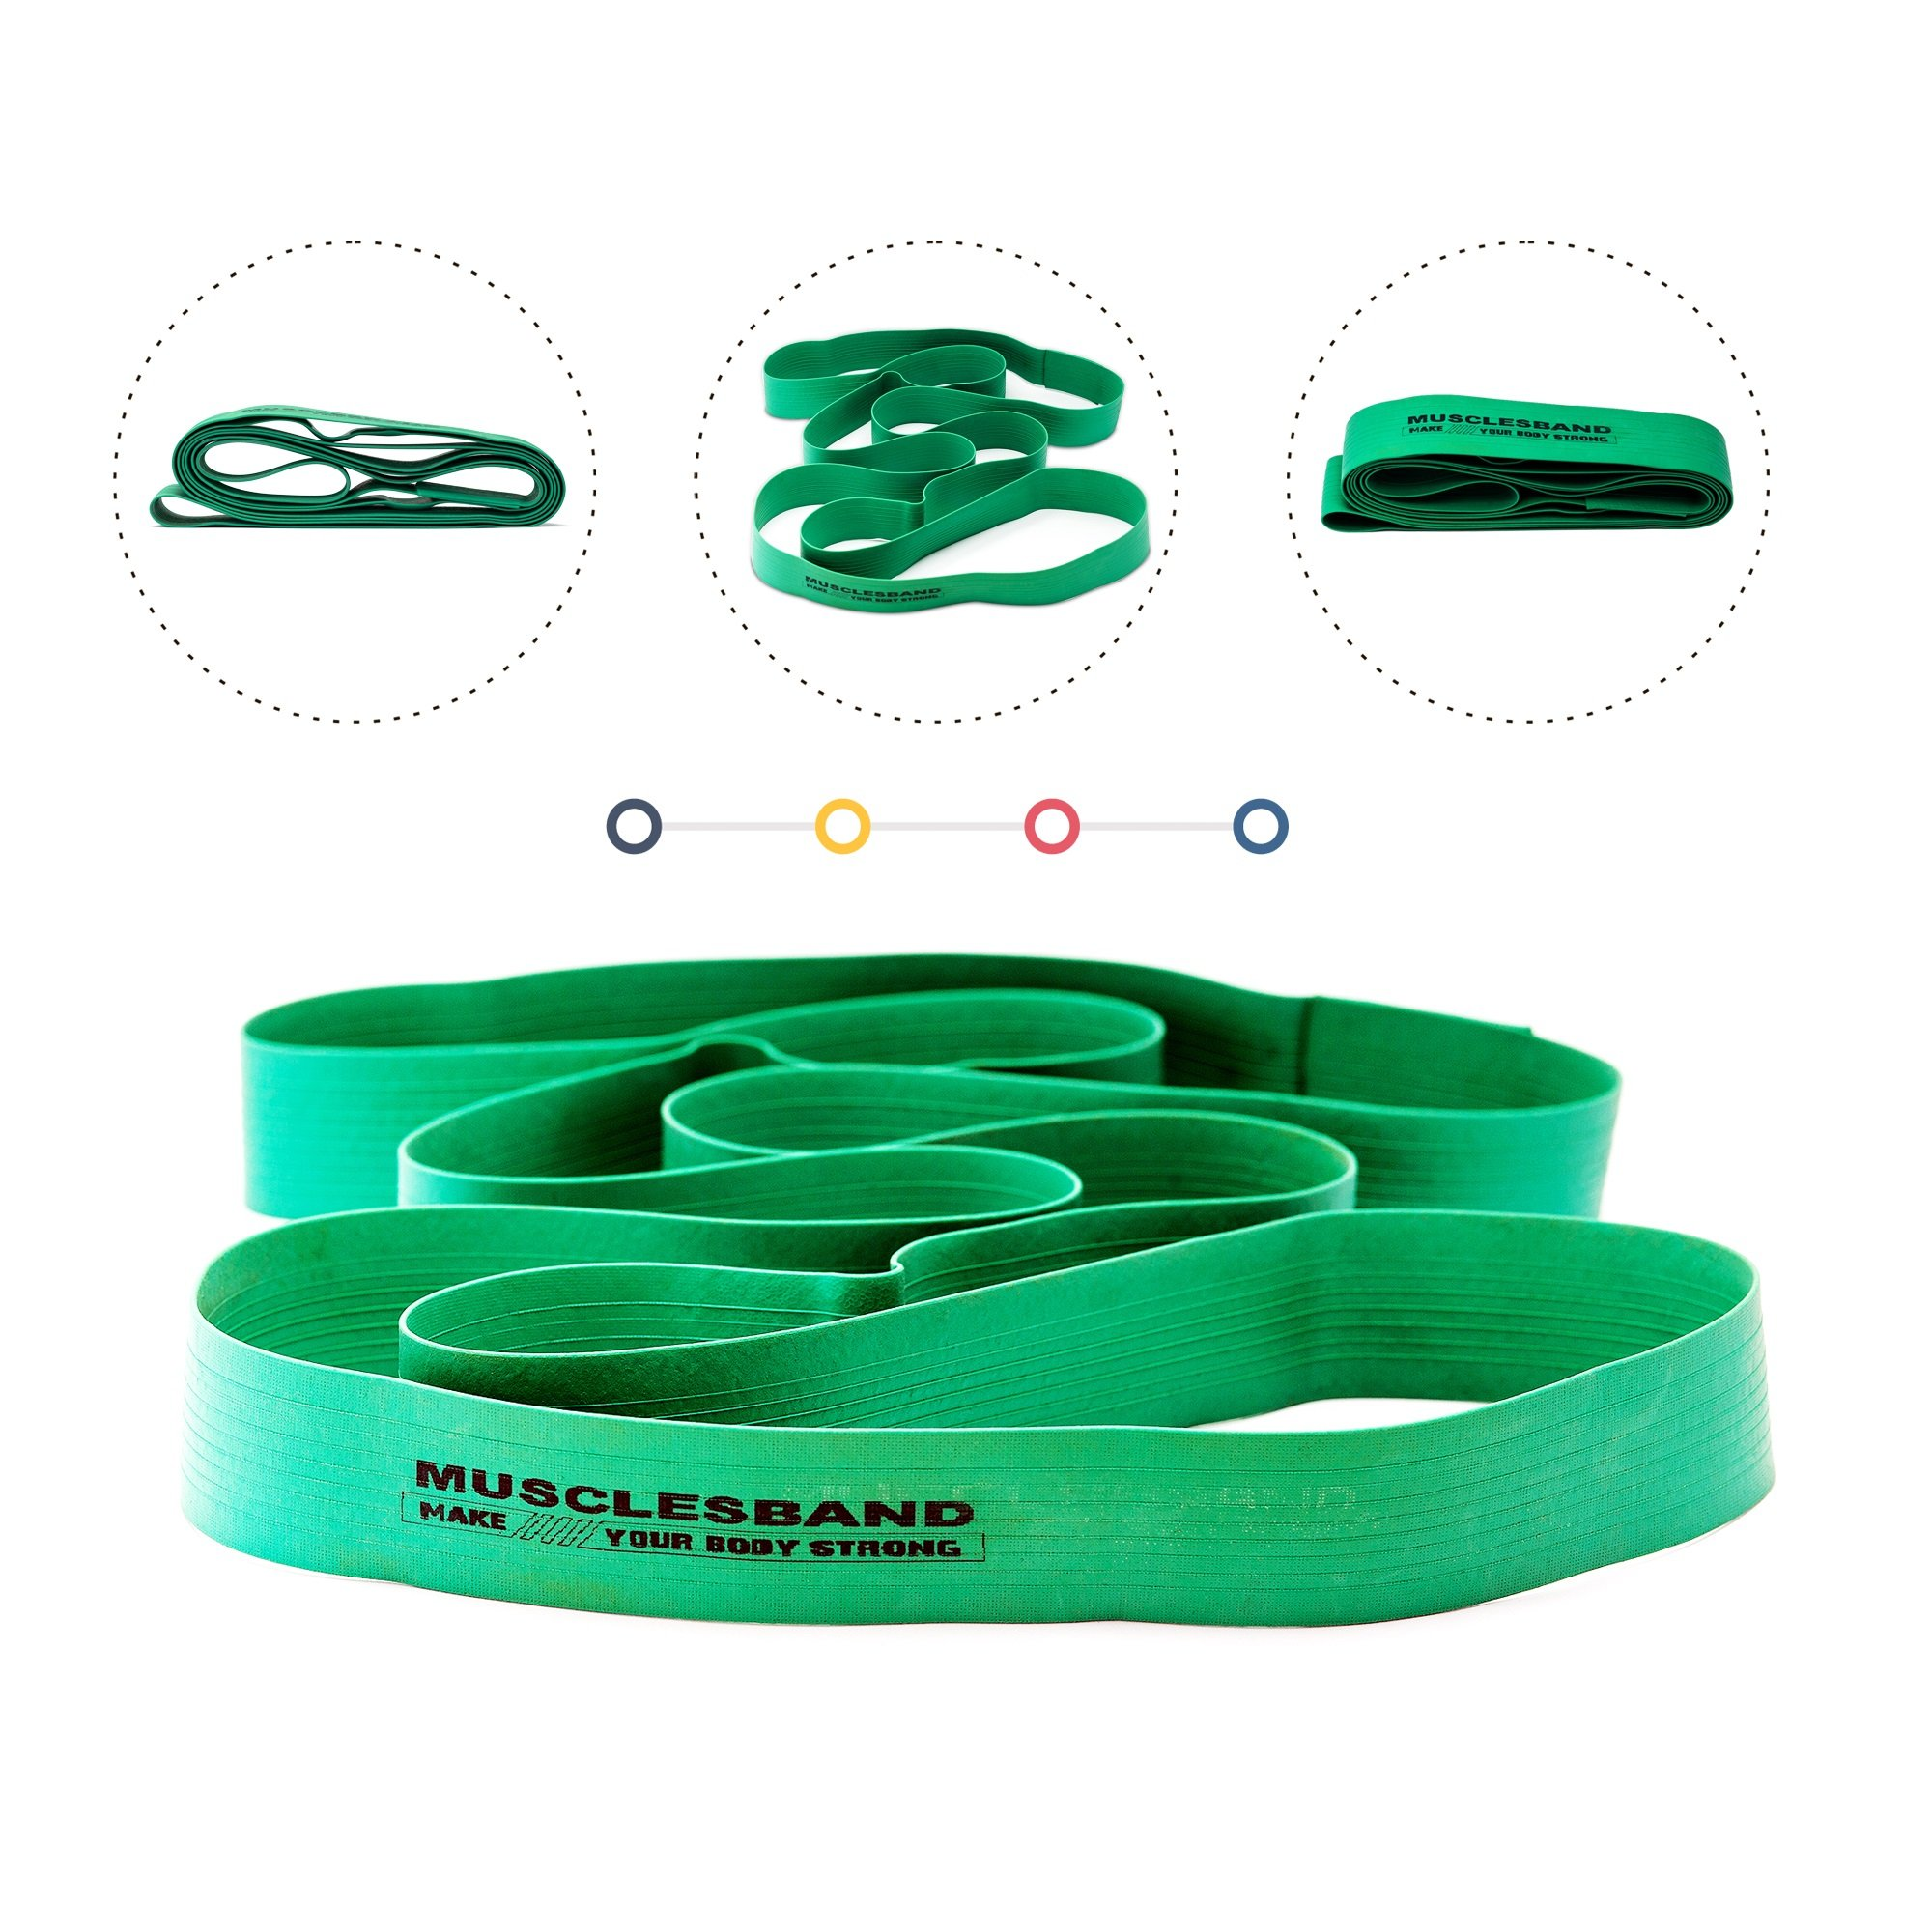 Stretch Band - Yoga band - Ballet band - Training band - Pilates band - Dance bands - Strength bands - Gymnastics bands - Resistance stretch rubber band for women men kids daily exercise and workout by Musclesband